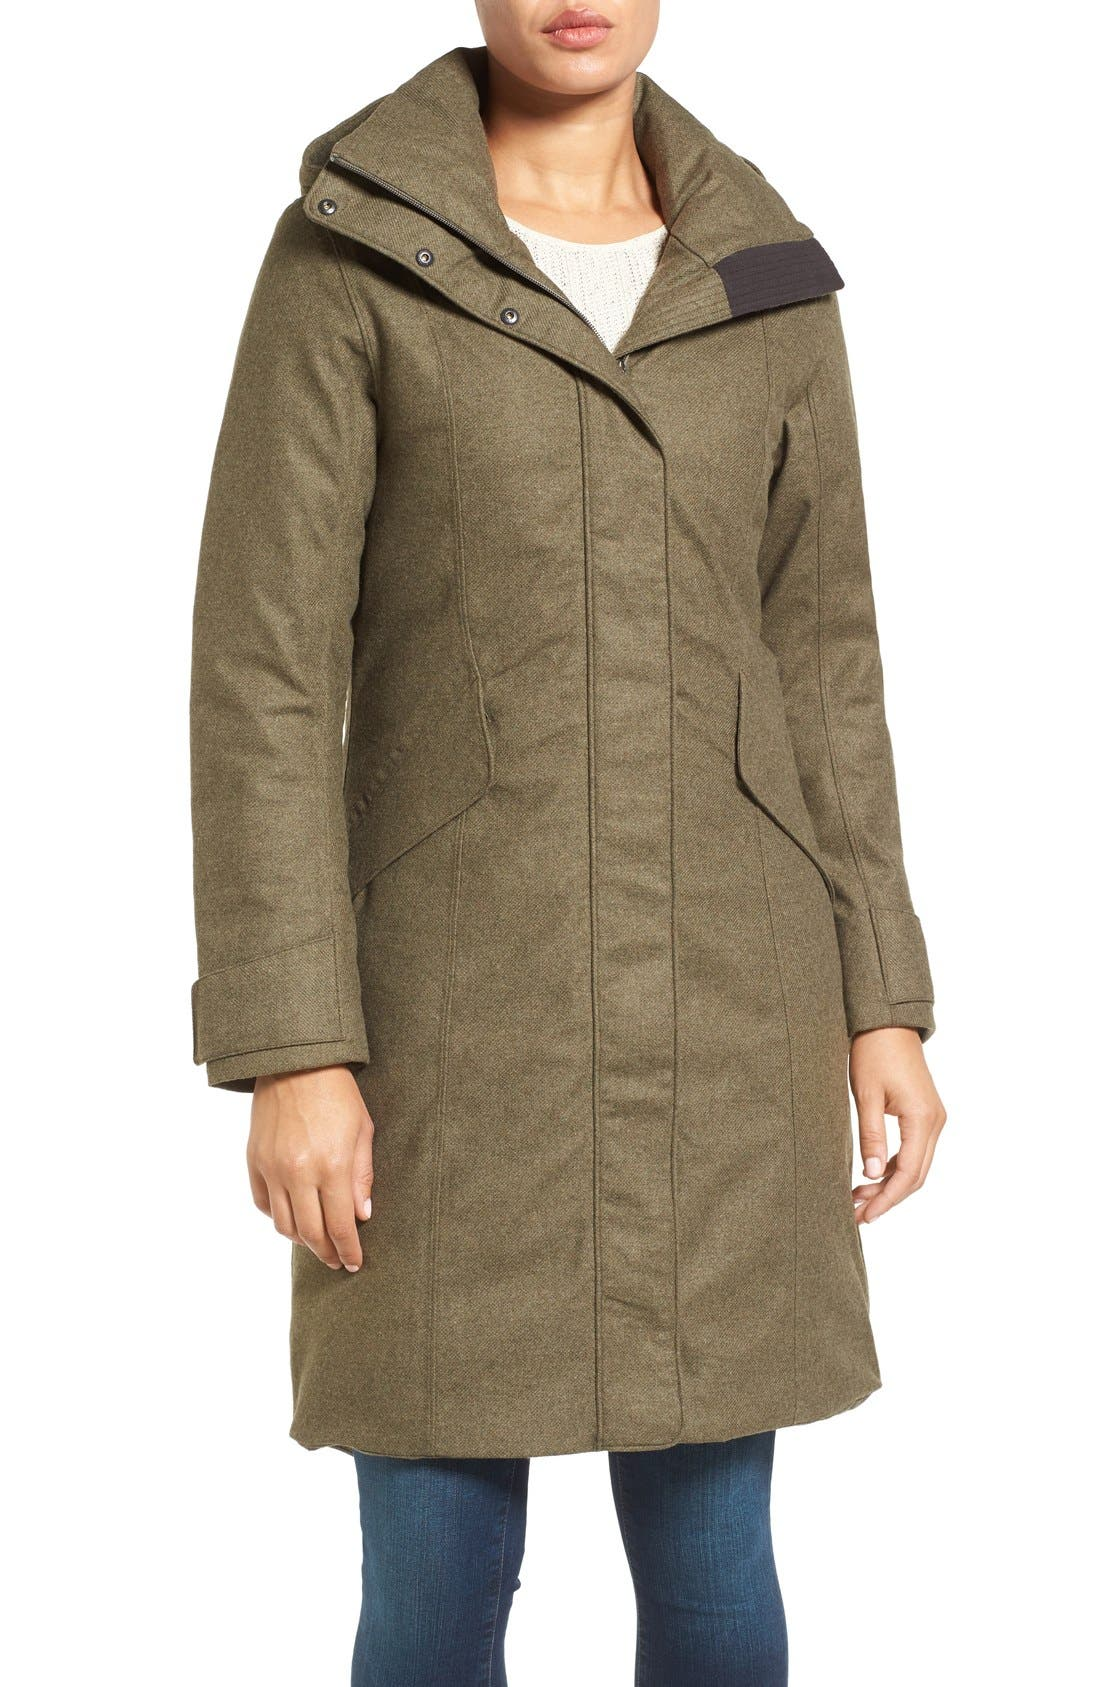 Nau 'Prato' Hooded Down Parka